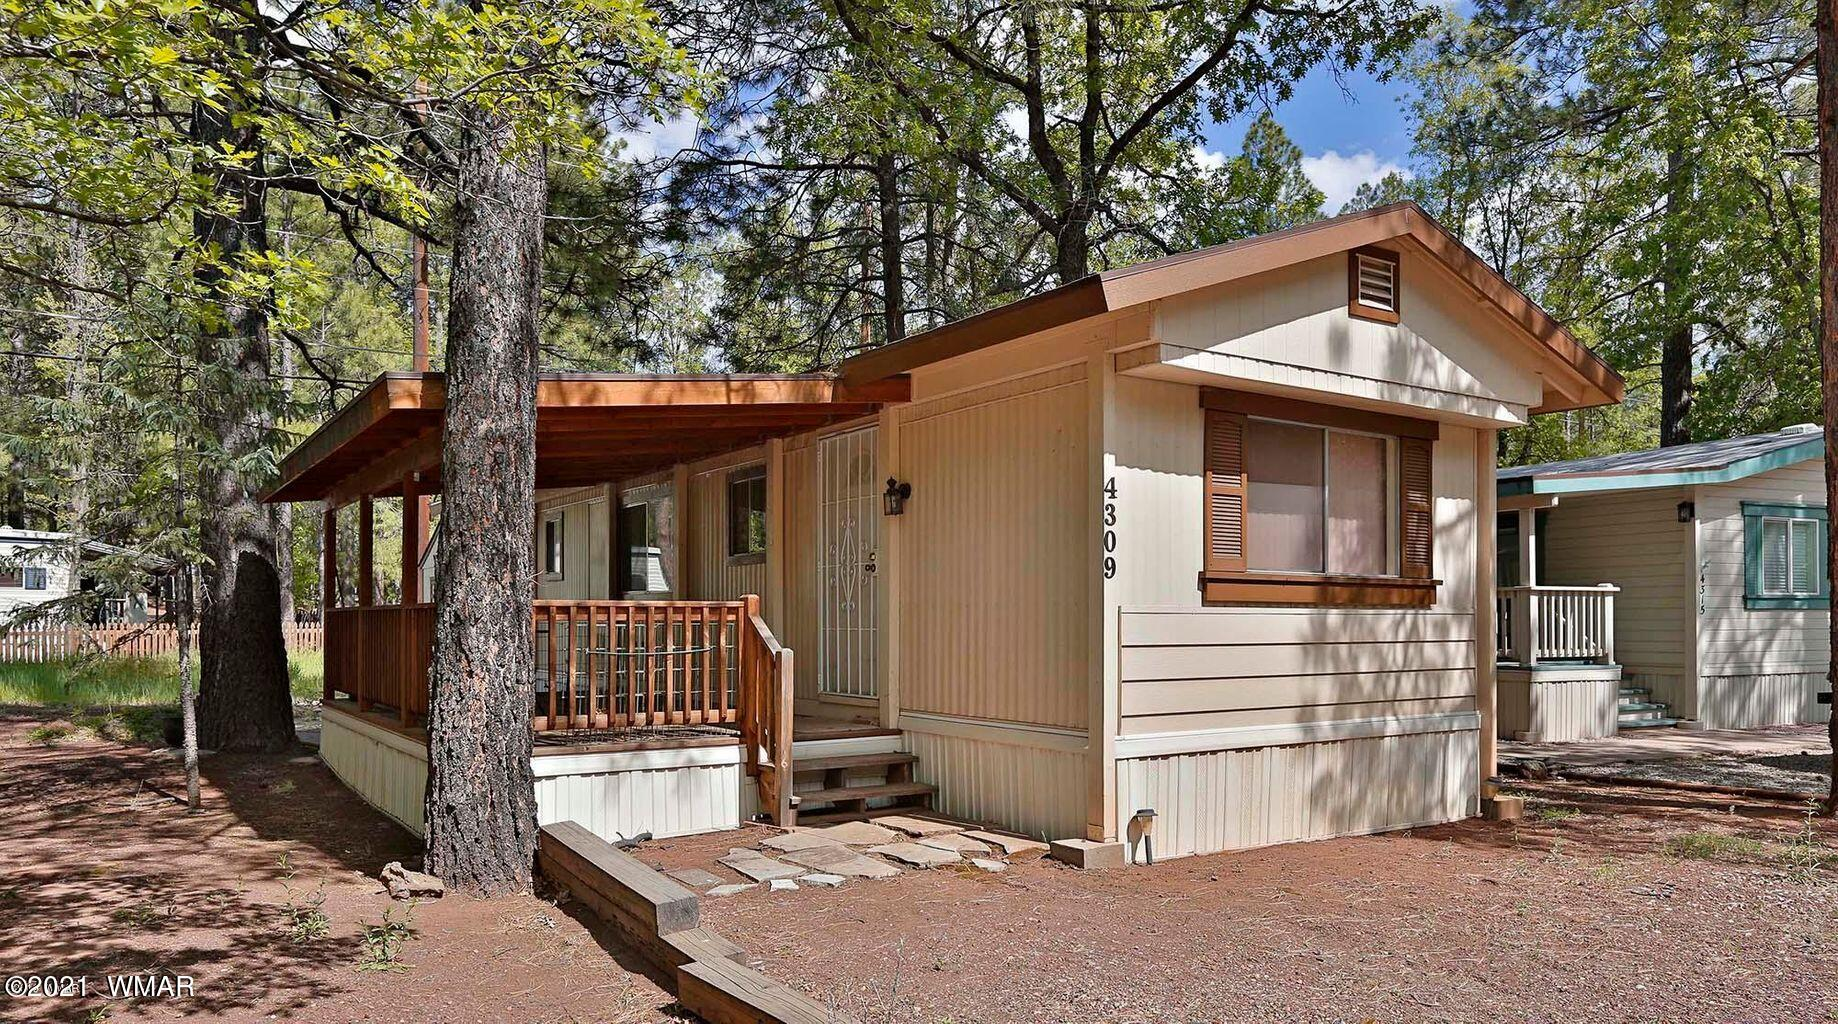 Quaint, Cozy and Comfortable! This well kept home is everything you need to plant some roots in the White Mountains. With tall pines, a patio area and a covered deck, youll be enjoying the cool mountain air in no time. The HOA dues of only $335/year allows a home owner access to the rec center.